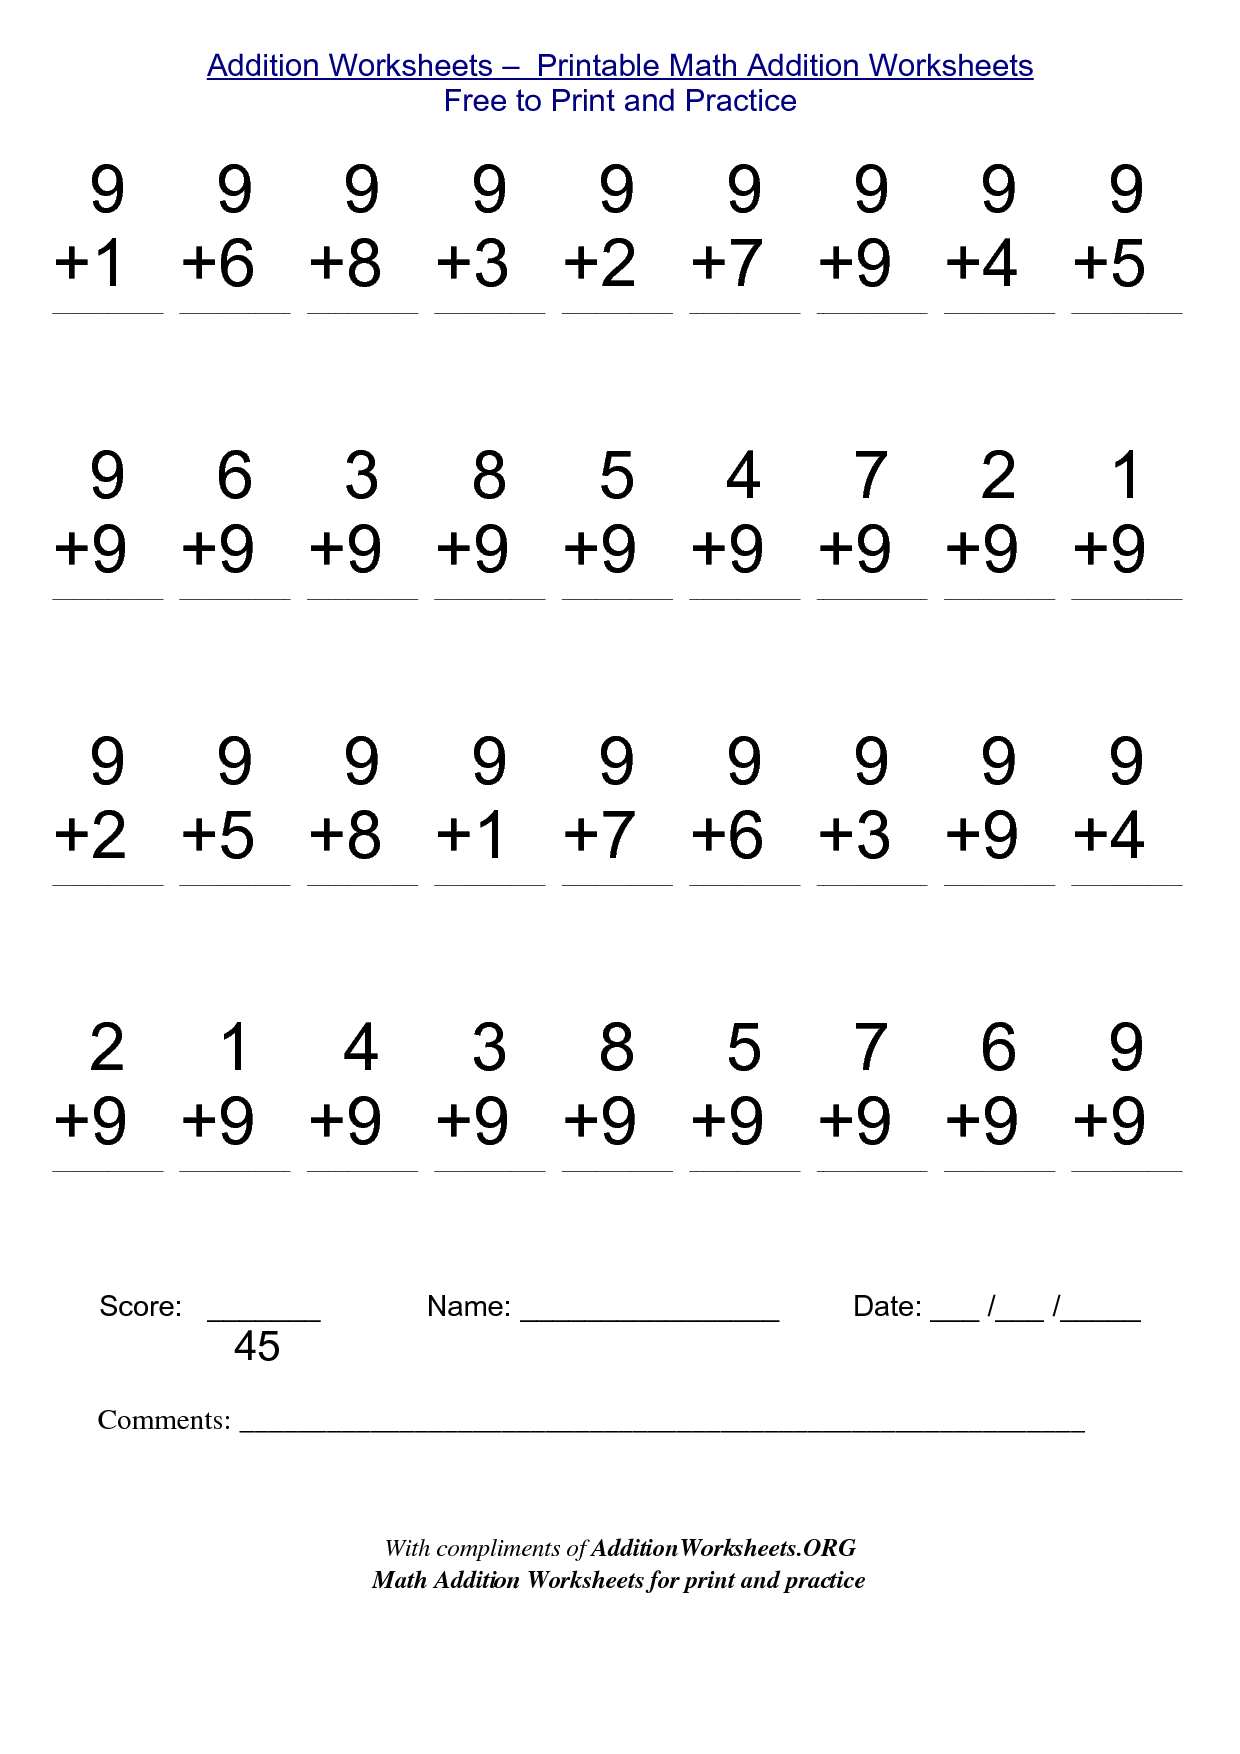 Printables Math Addition Worksheets Printable 1st grade math worksheets printable addition intrepidpath 4 best images of printable